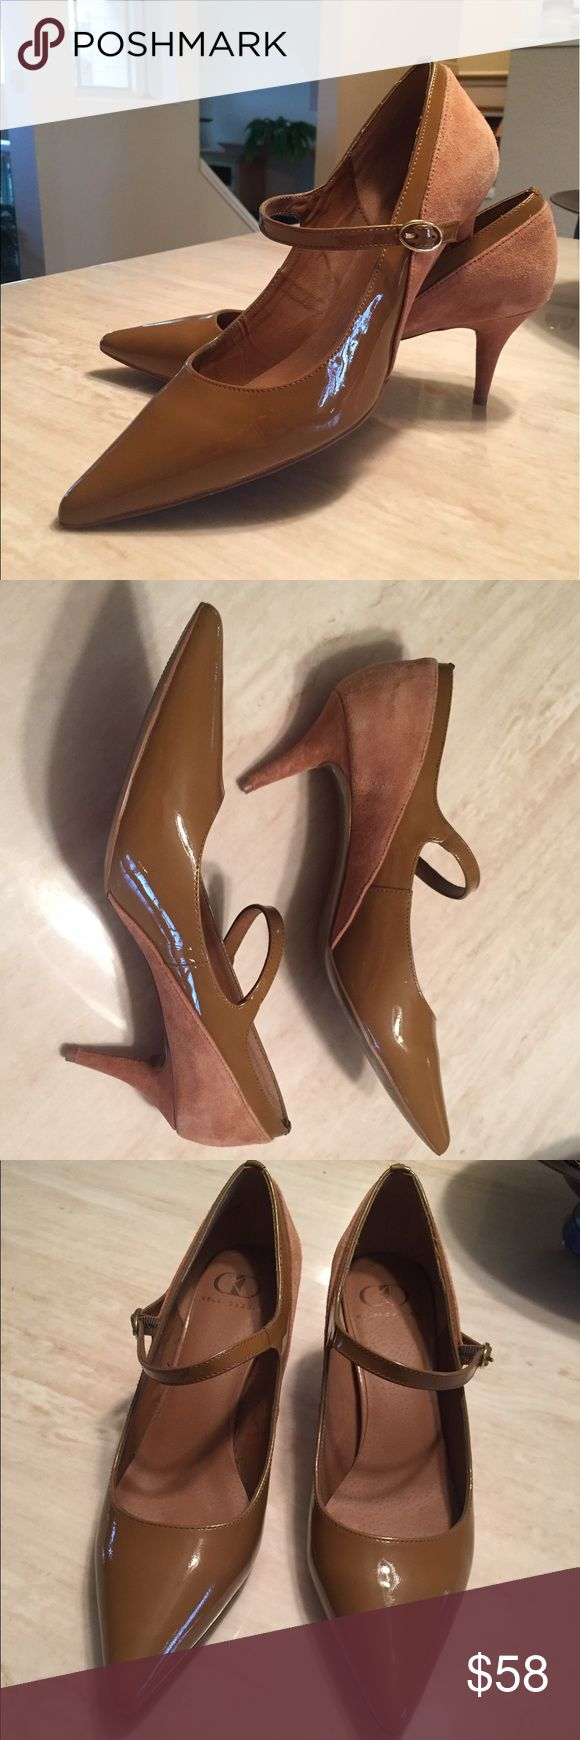 """Like New Kelsi Dagger patent & Suede Pumps Sz 9 Gorgeous Pair of """"Like New"""" Kelsi Dagger Brown Suede & Patent Leather Pumps in a Size 9. These shoes have a 3"""" heel and are super comfortable. Worn once and purchased at Saks. Kelsi Dagger Shoes Heels"""